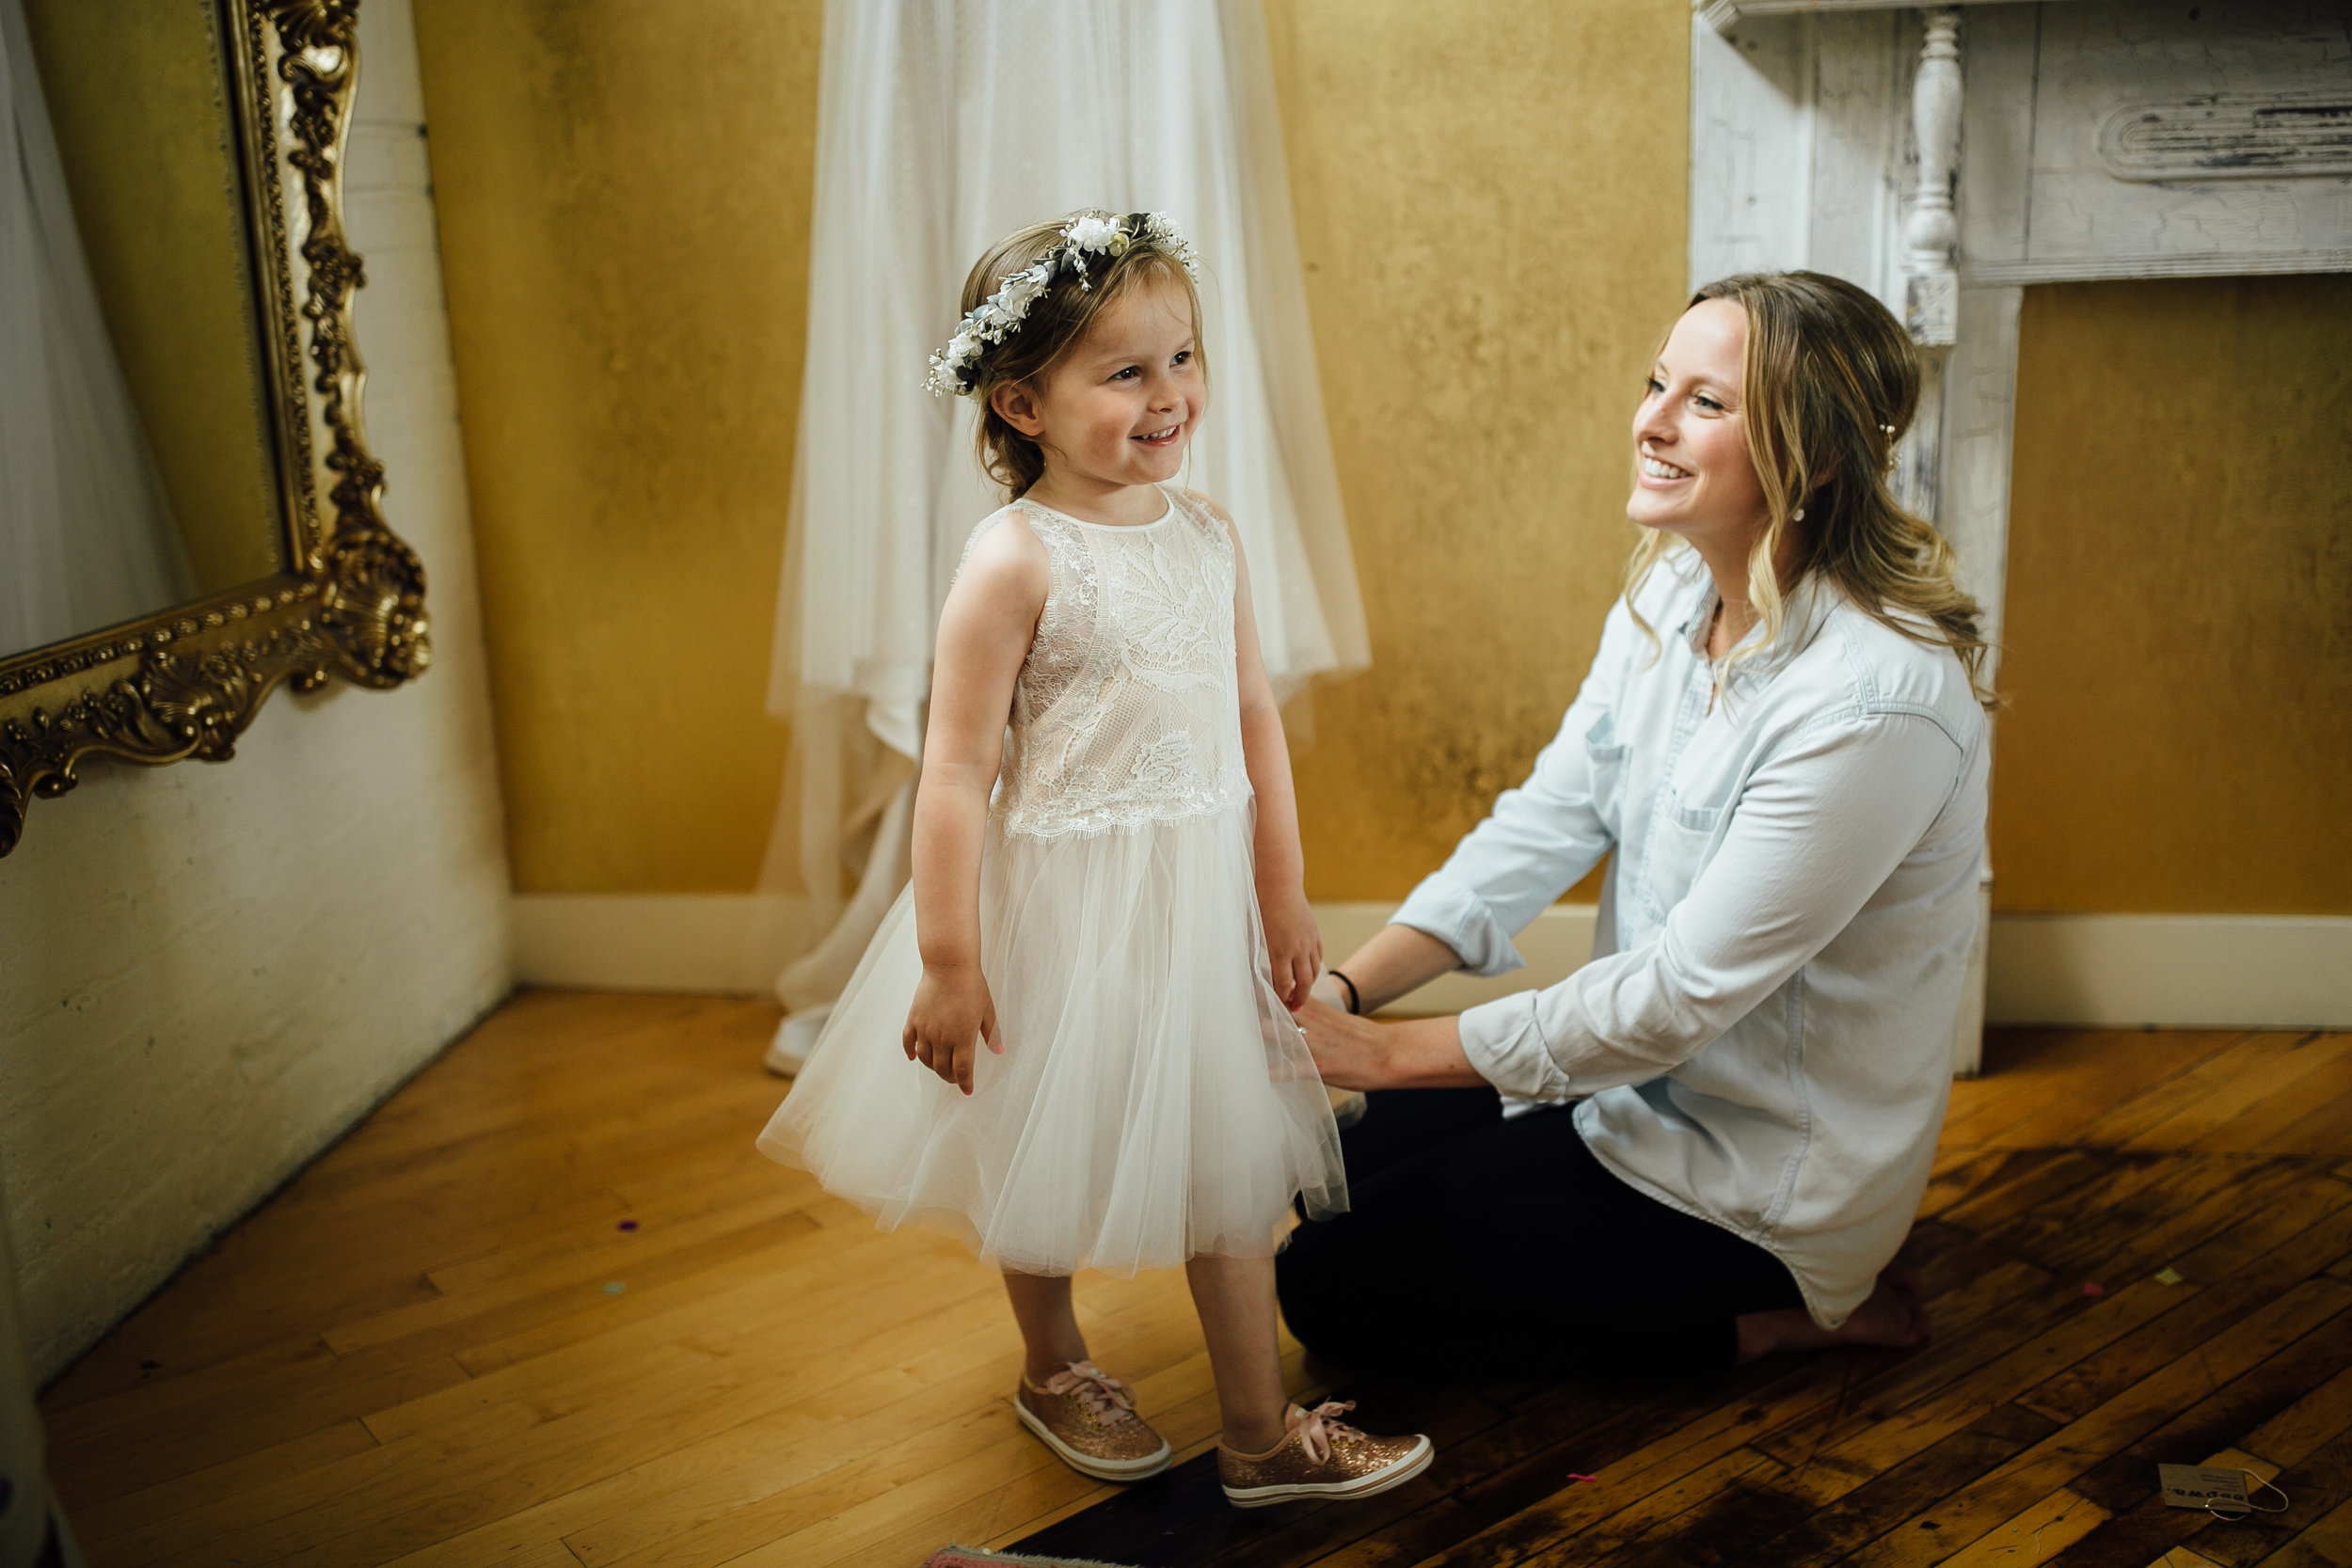 2018-6-Maggie-Johnny-Preparations-Cheney-Place-Wedding-Grand-Rapids-Michigan-Wedding-Photographer-192.jpg